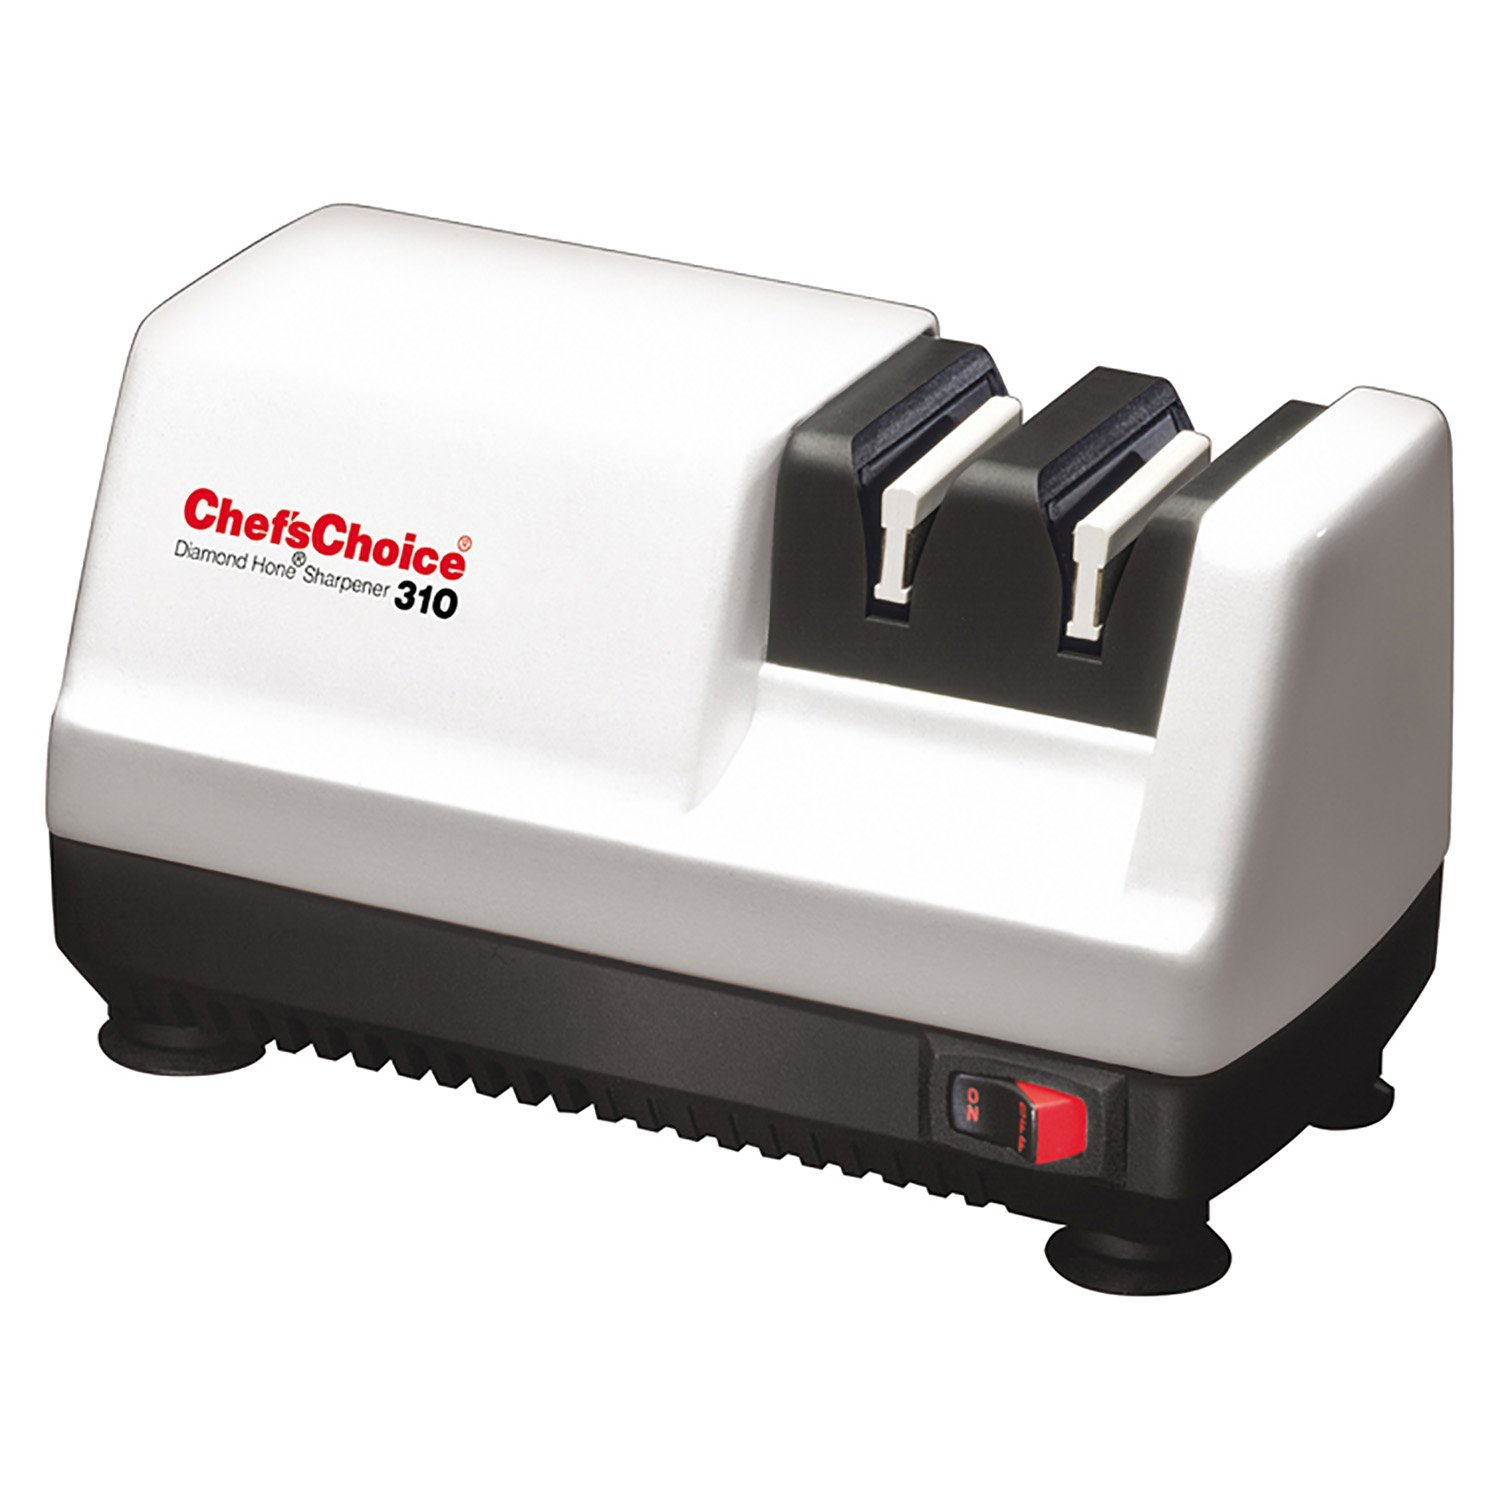 Chef's Choice Diamond Hone Sharpener 310